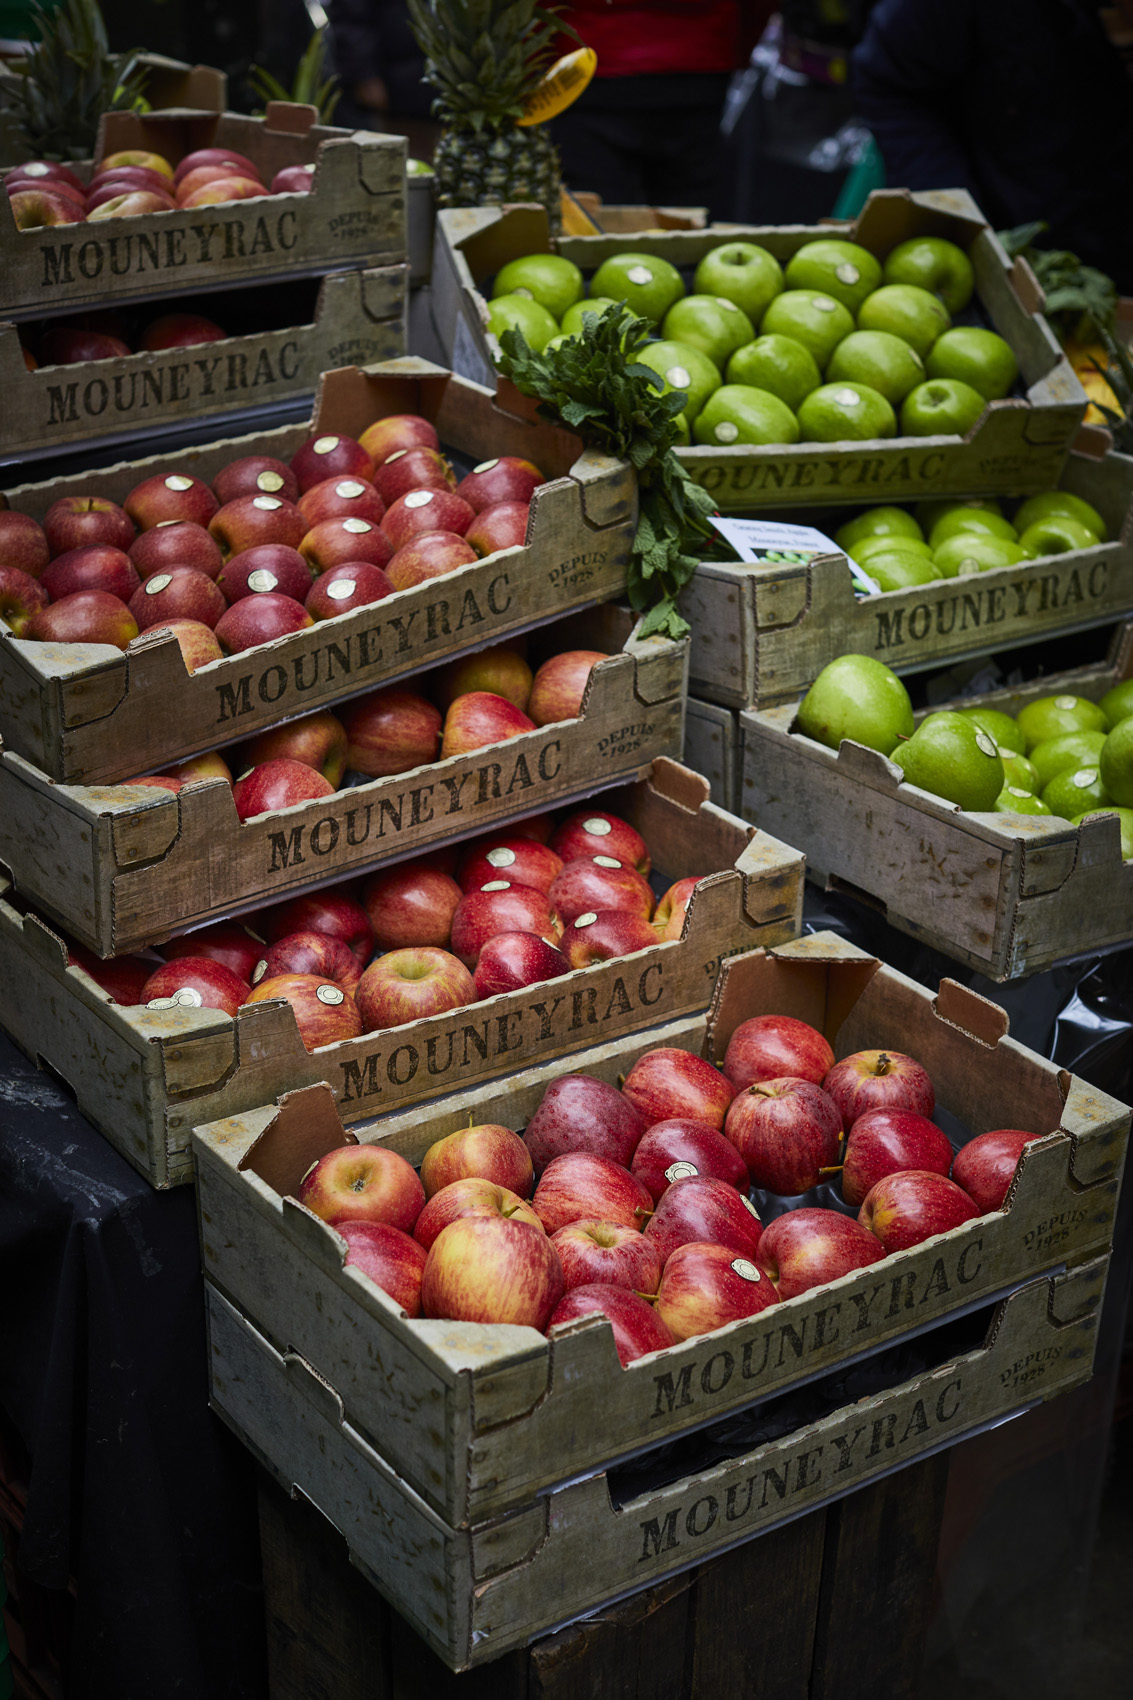 SteveRyan_Photographer_Ingredients_Produce_Vegetables_Apples_01